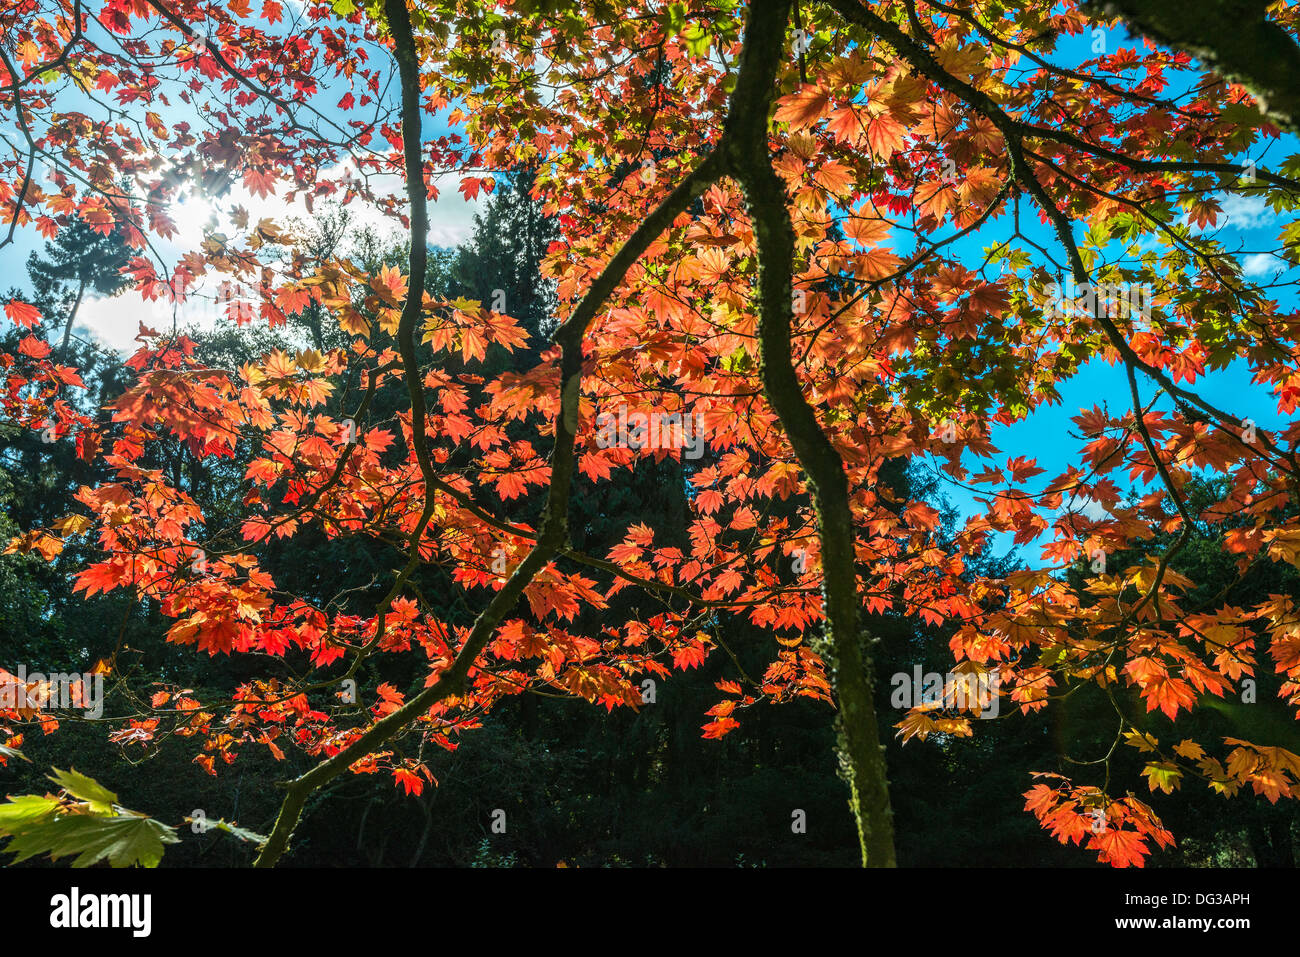 Acer tree in autumn colours in National Arboretum, Westonbirt nr Tetbury Glos. Engalnd UK. managed by the Forestry Commission. - Stock Image